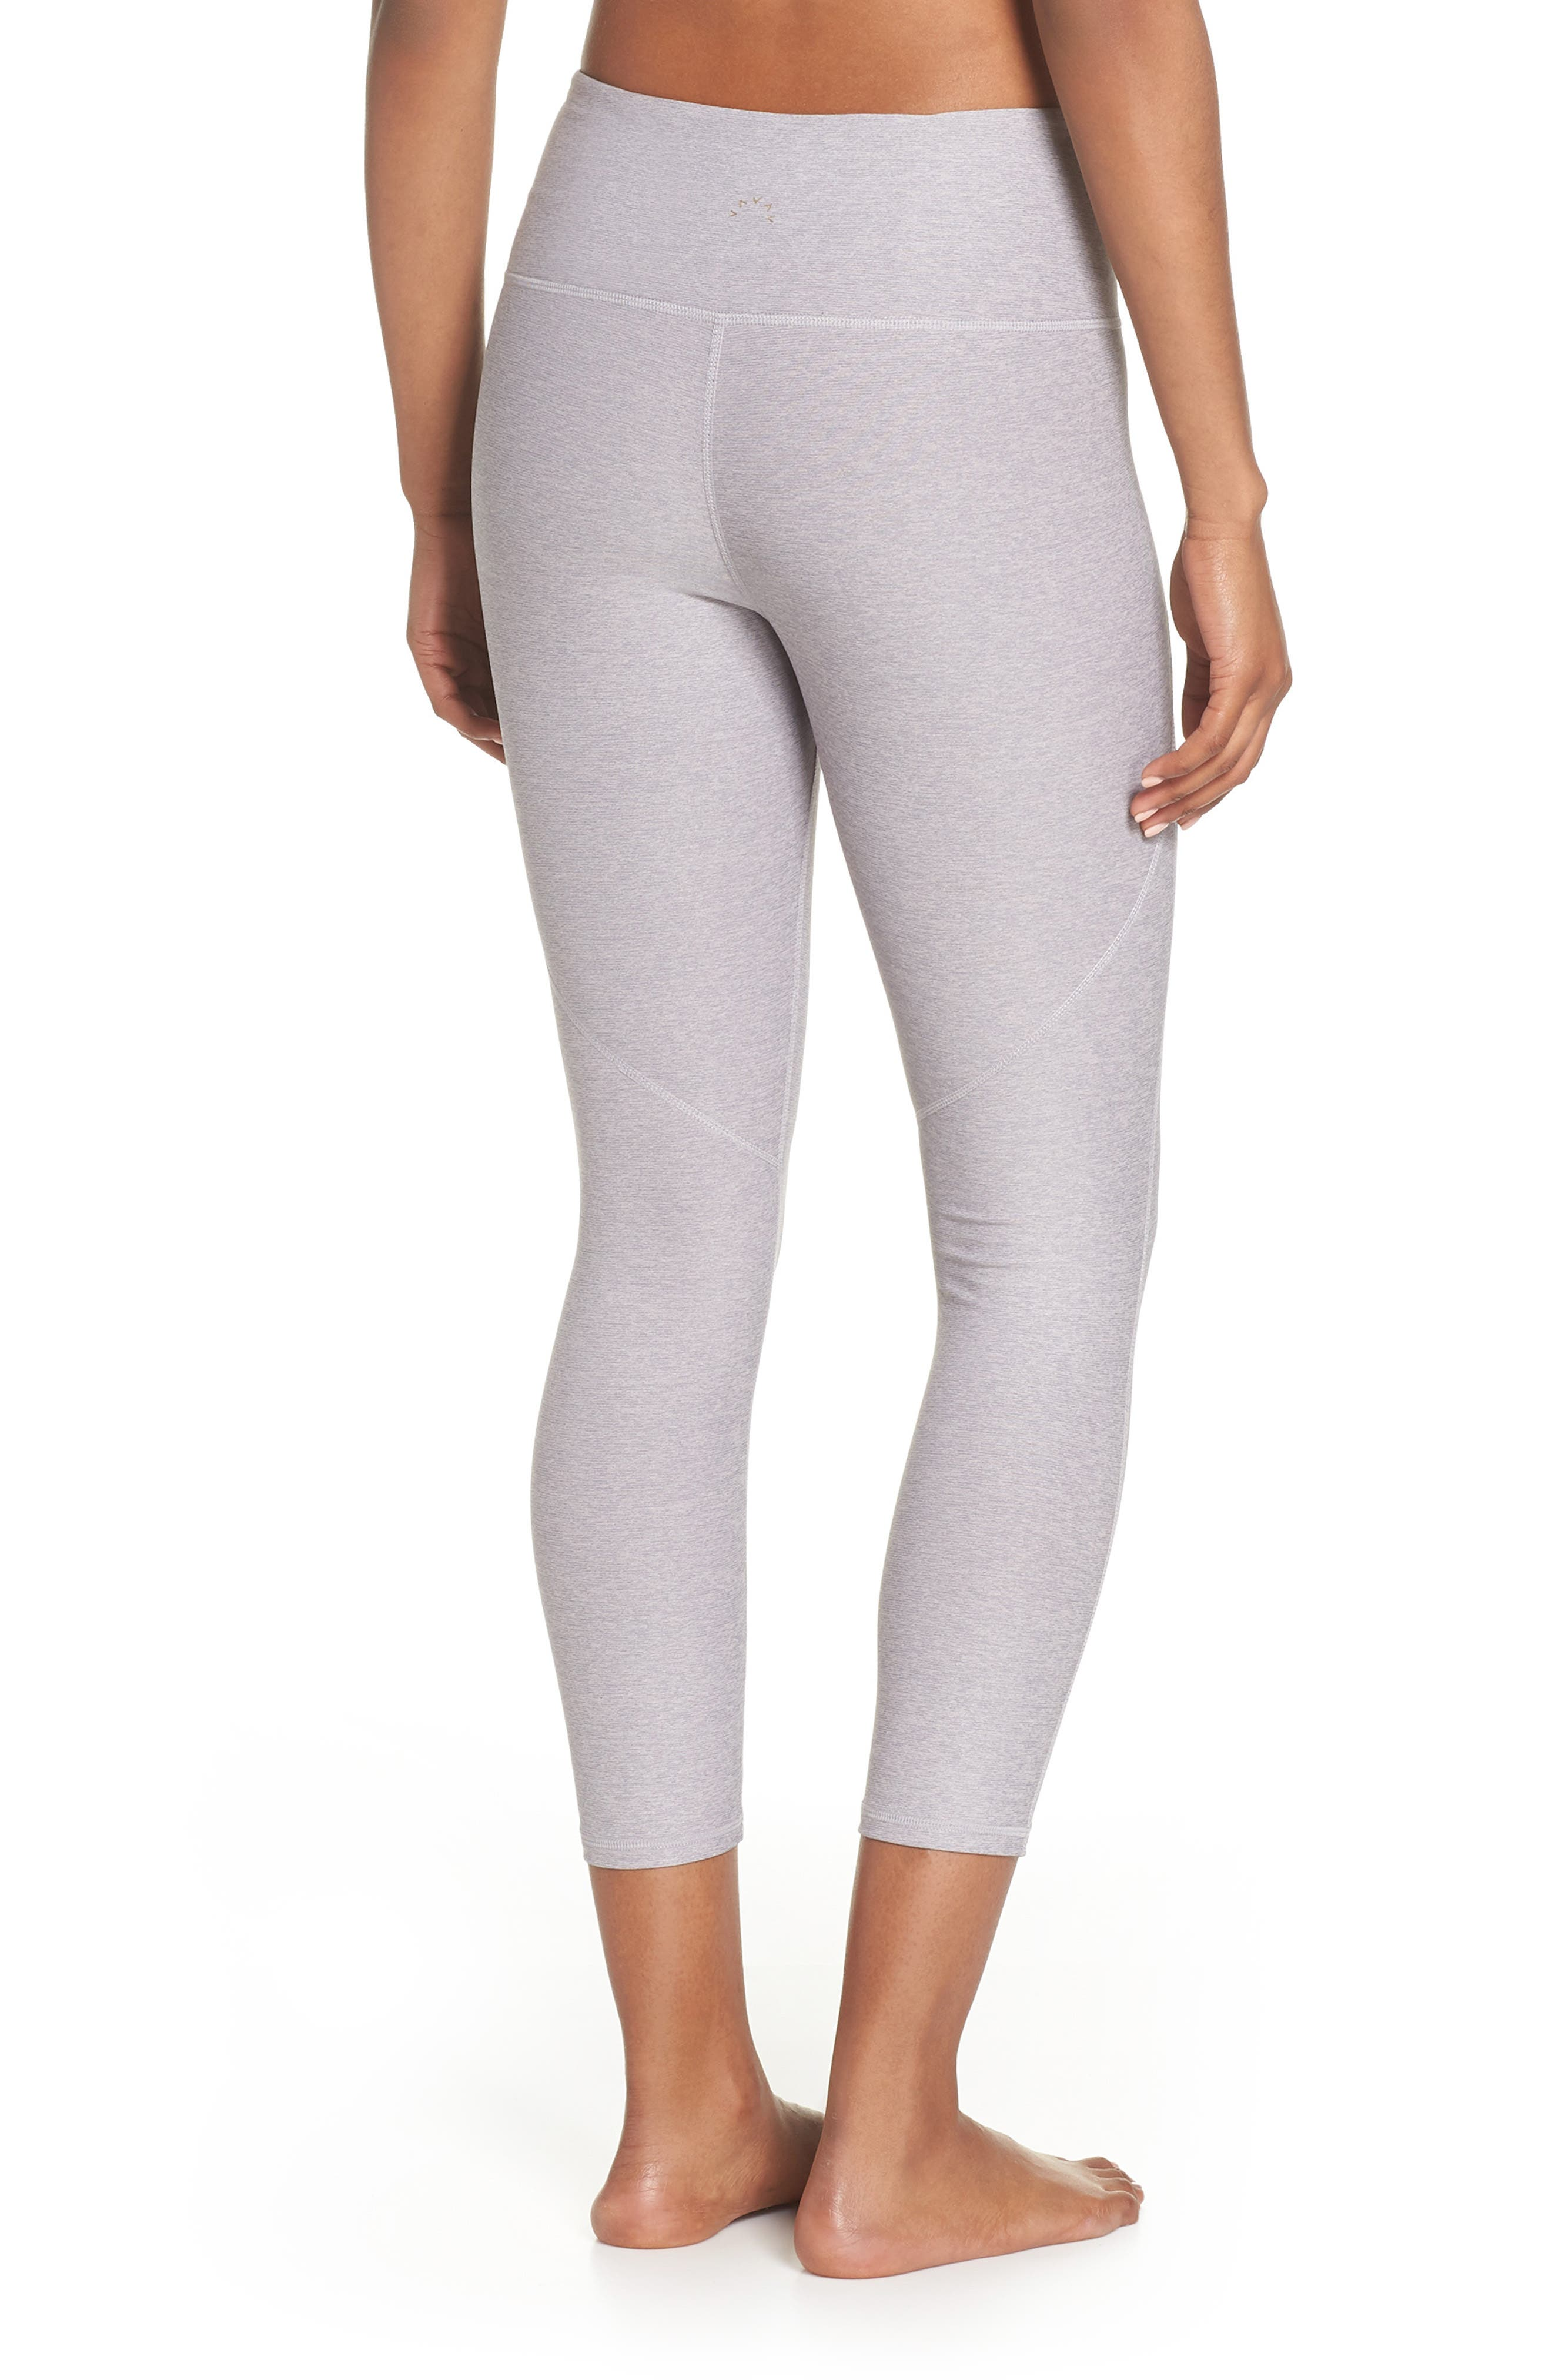 Everett High Waist Crop Tights,                             Alternate thumbnail 2, color,                             GINGER SNAP/ FOLKSTONE GRAY